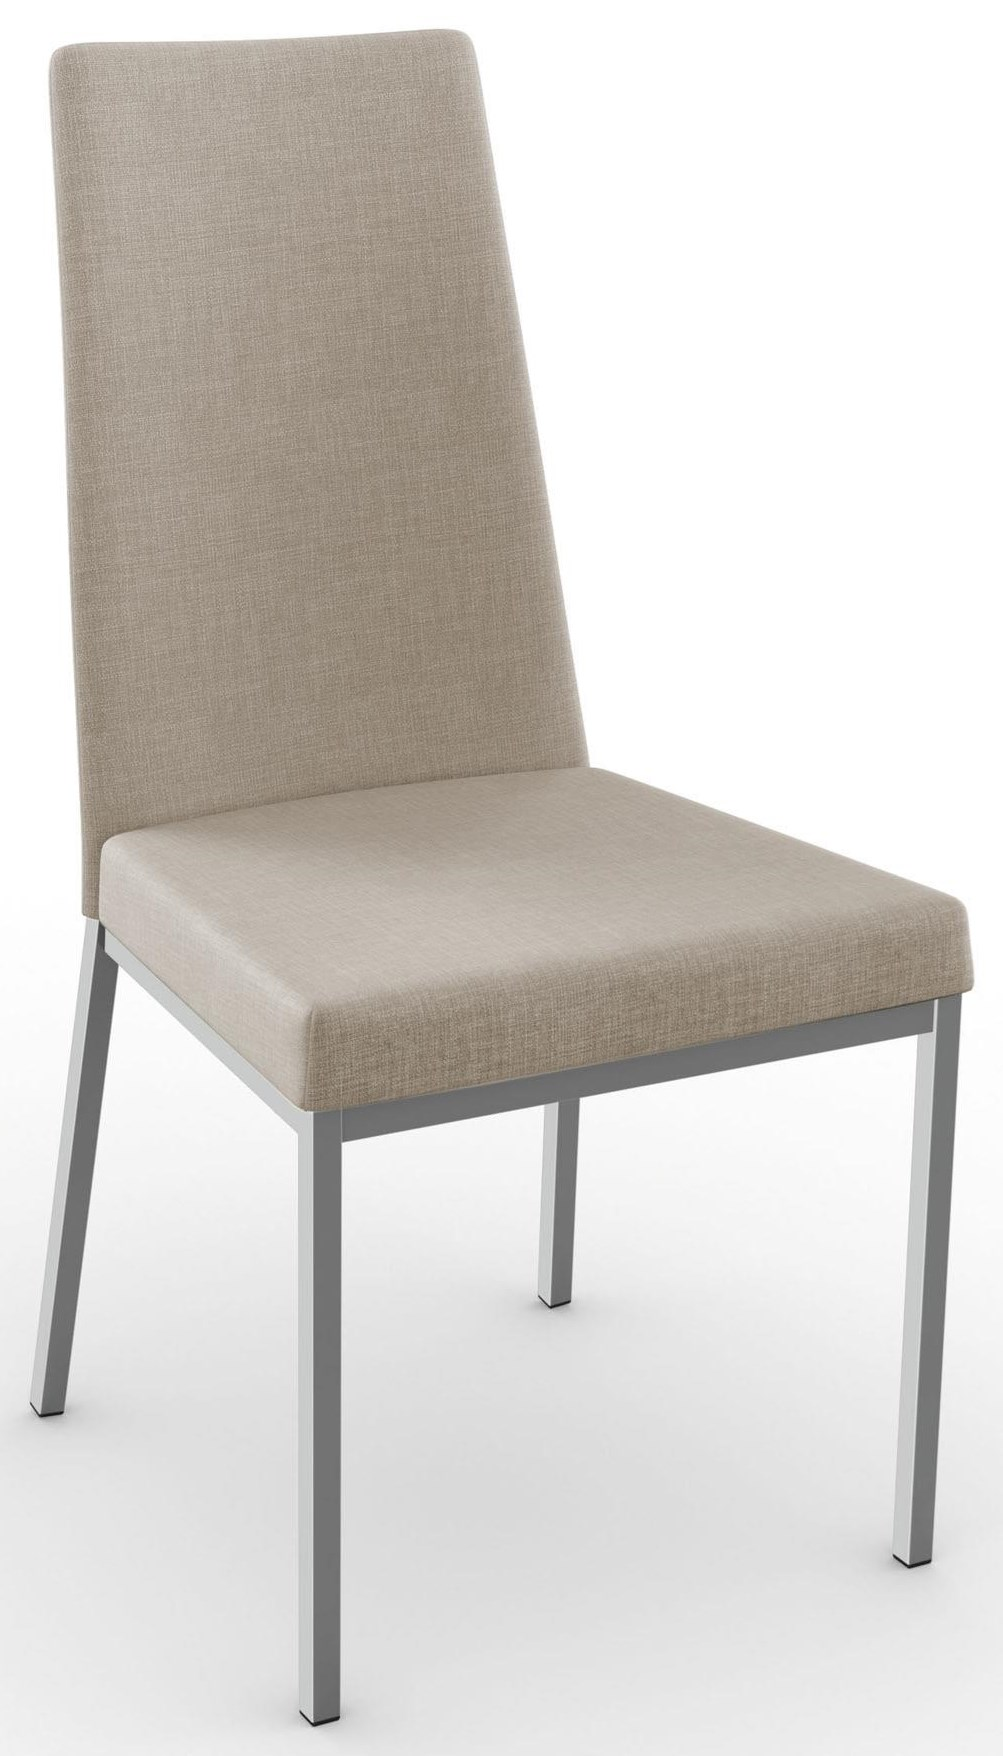 Linea Chair by Amisco at HomeWorld Furniture